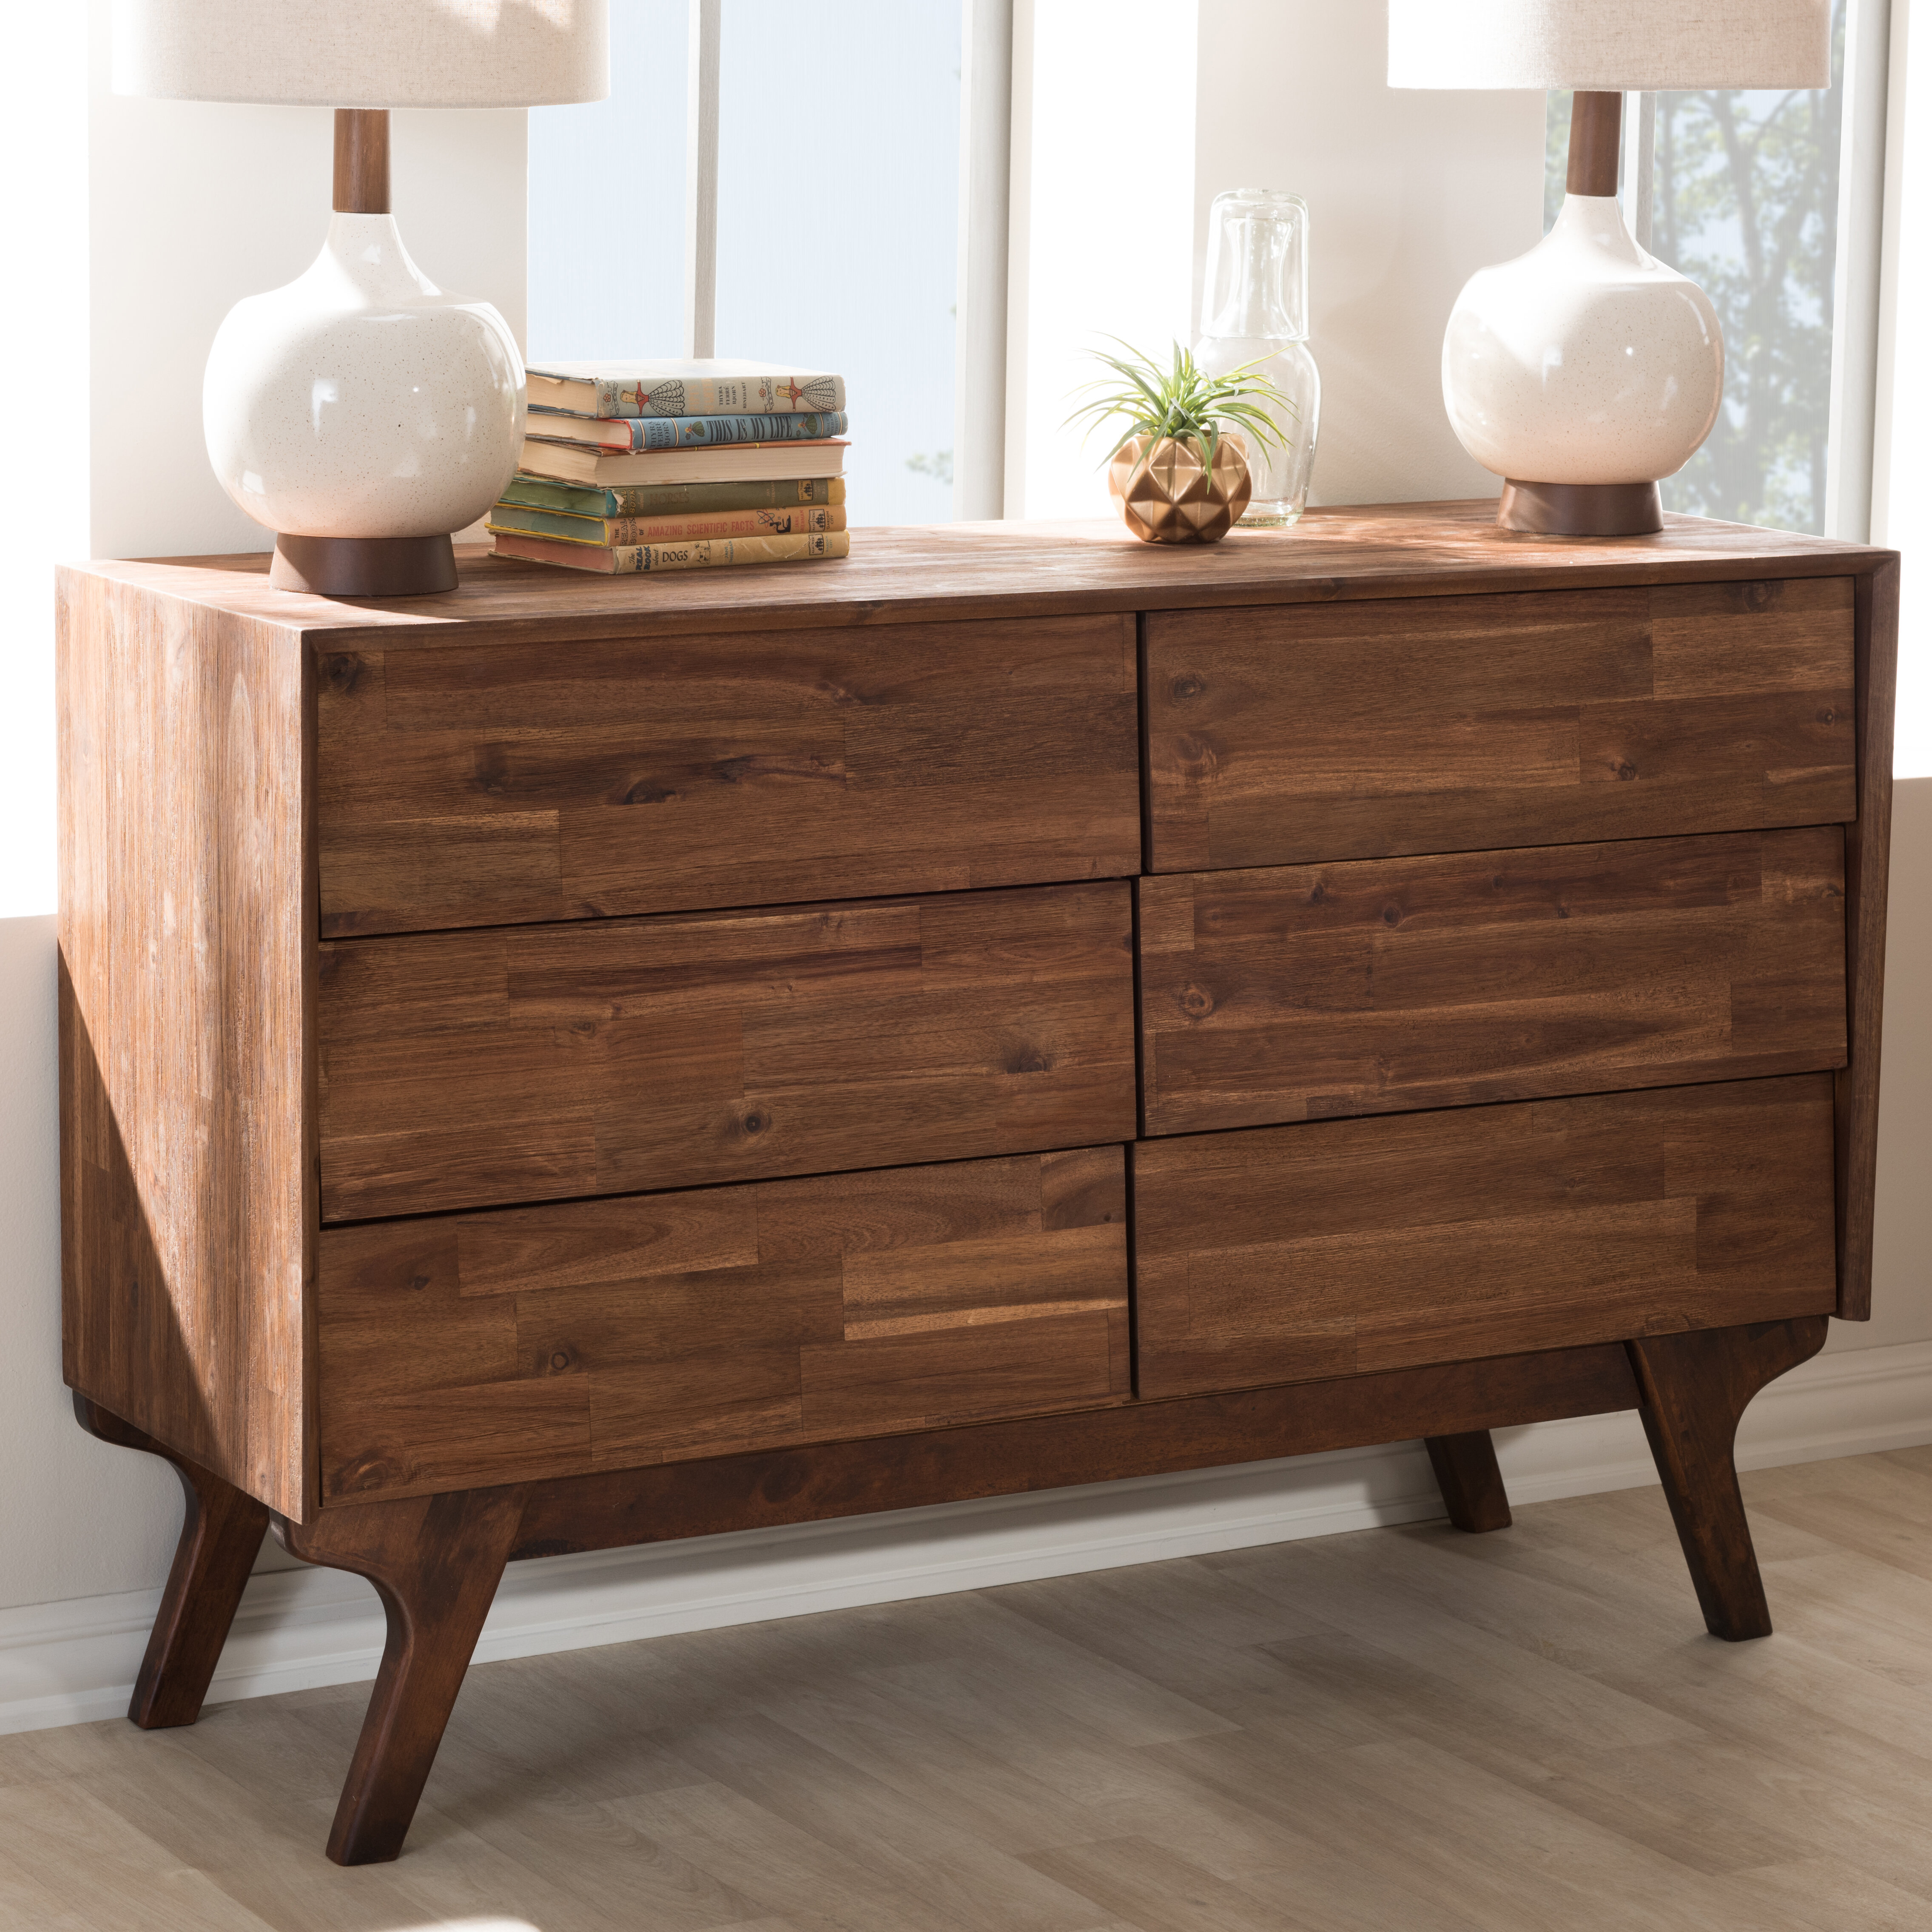 tion furniture rustic reviews double union dresser pdx wayfair drawer wood